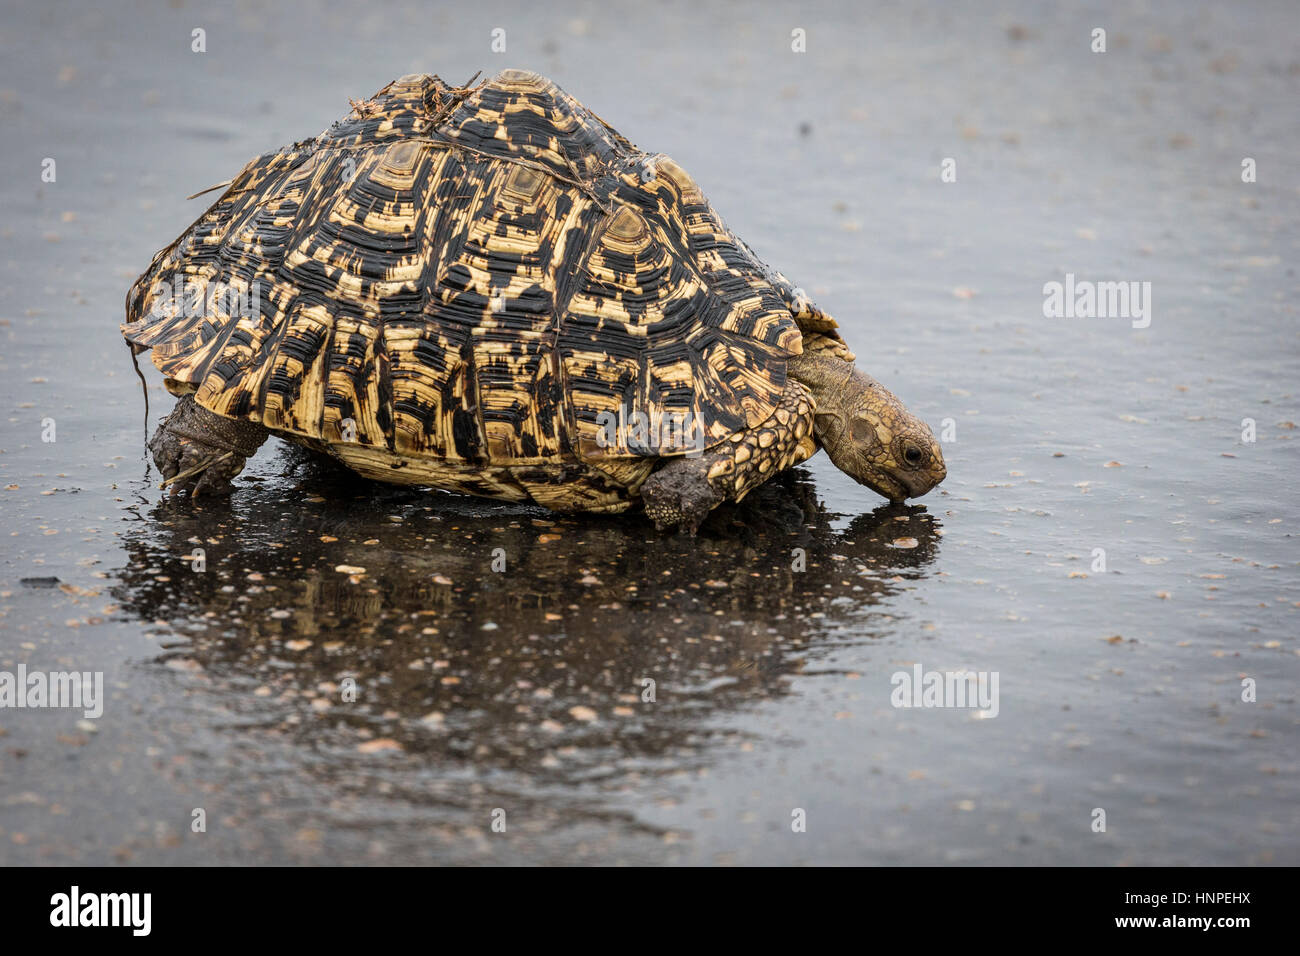 Leopard tortoise (Geochelone pardalis), Kruger National Park, Republic of South Africa - Stock Image